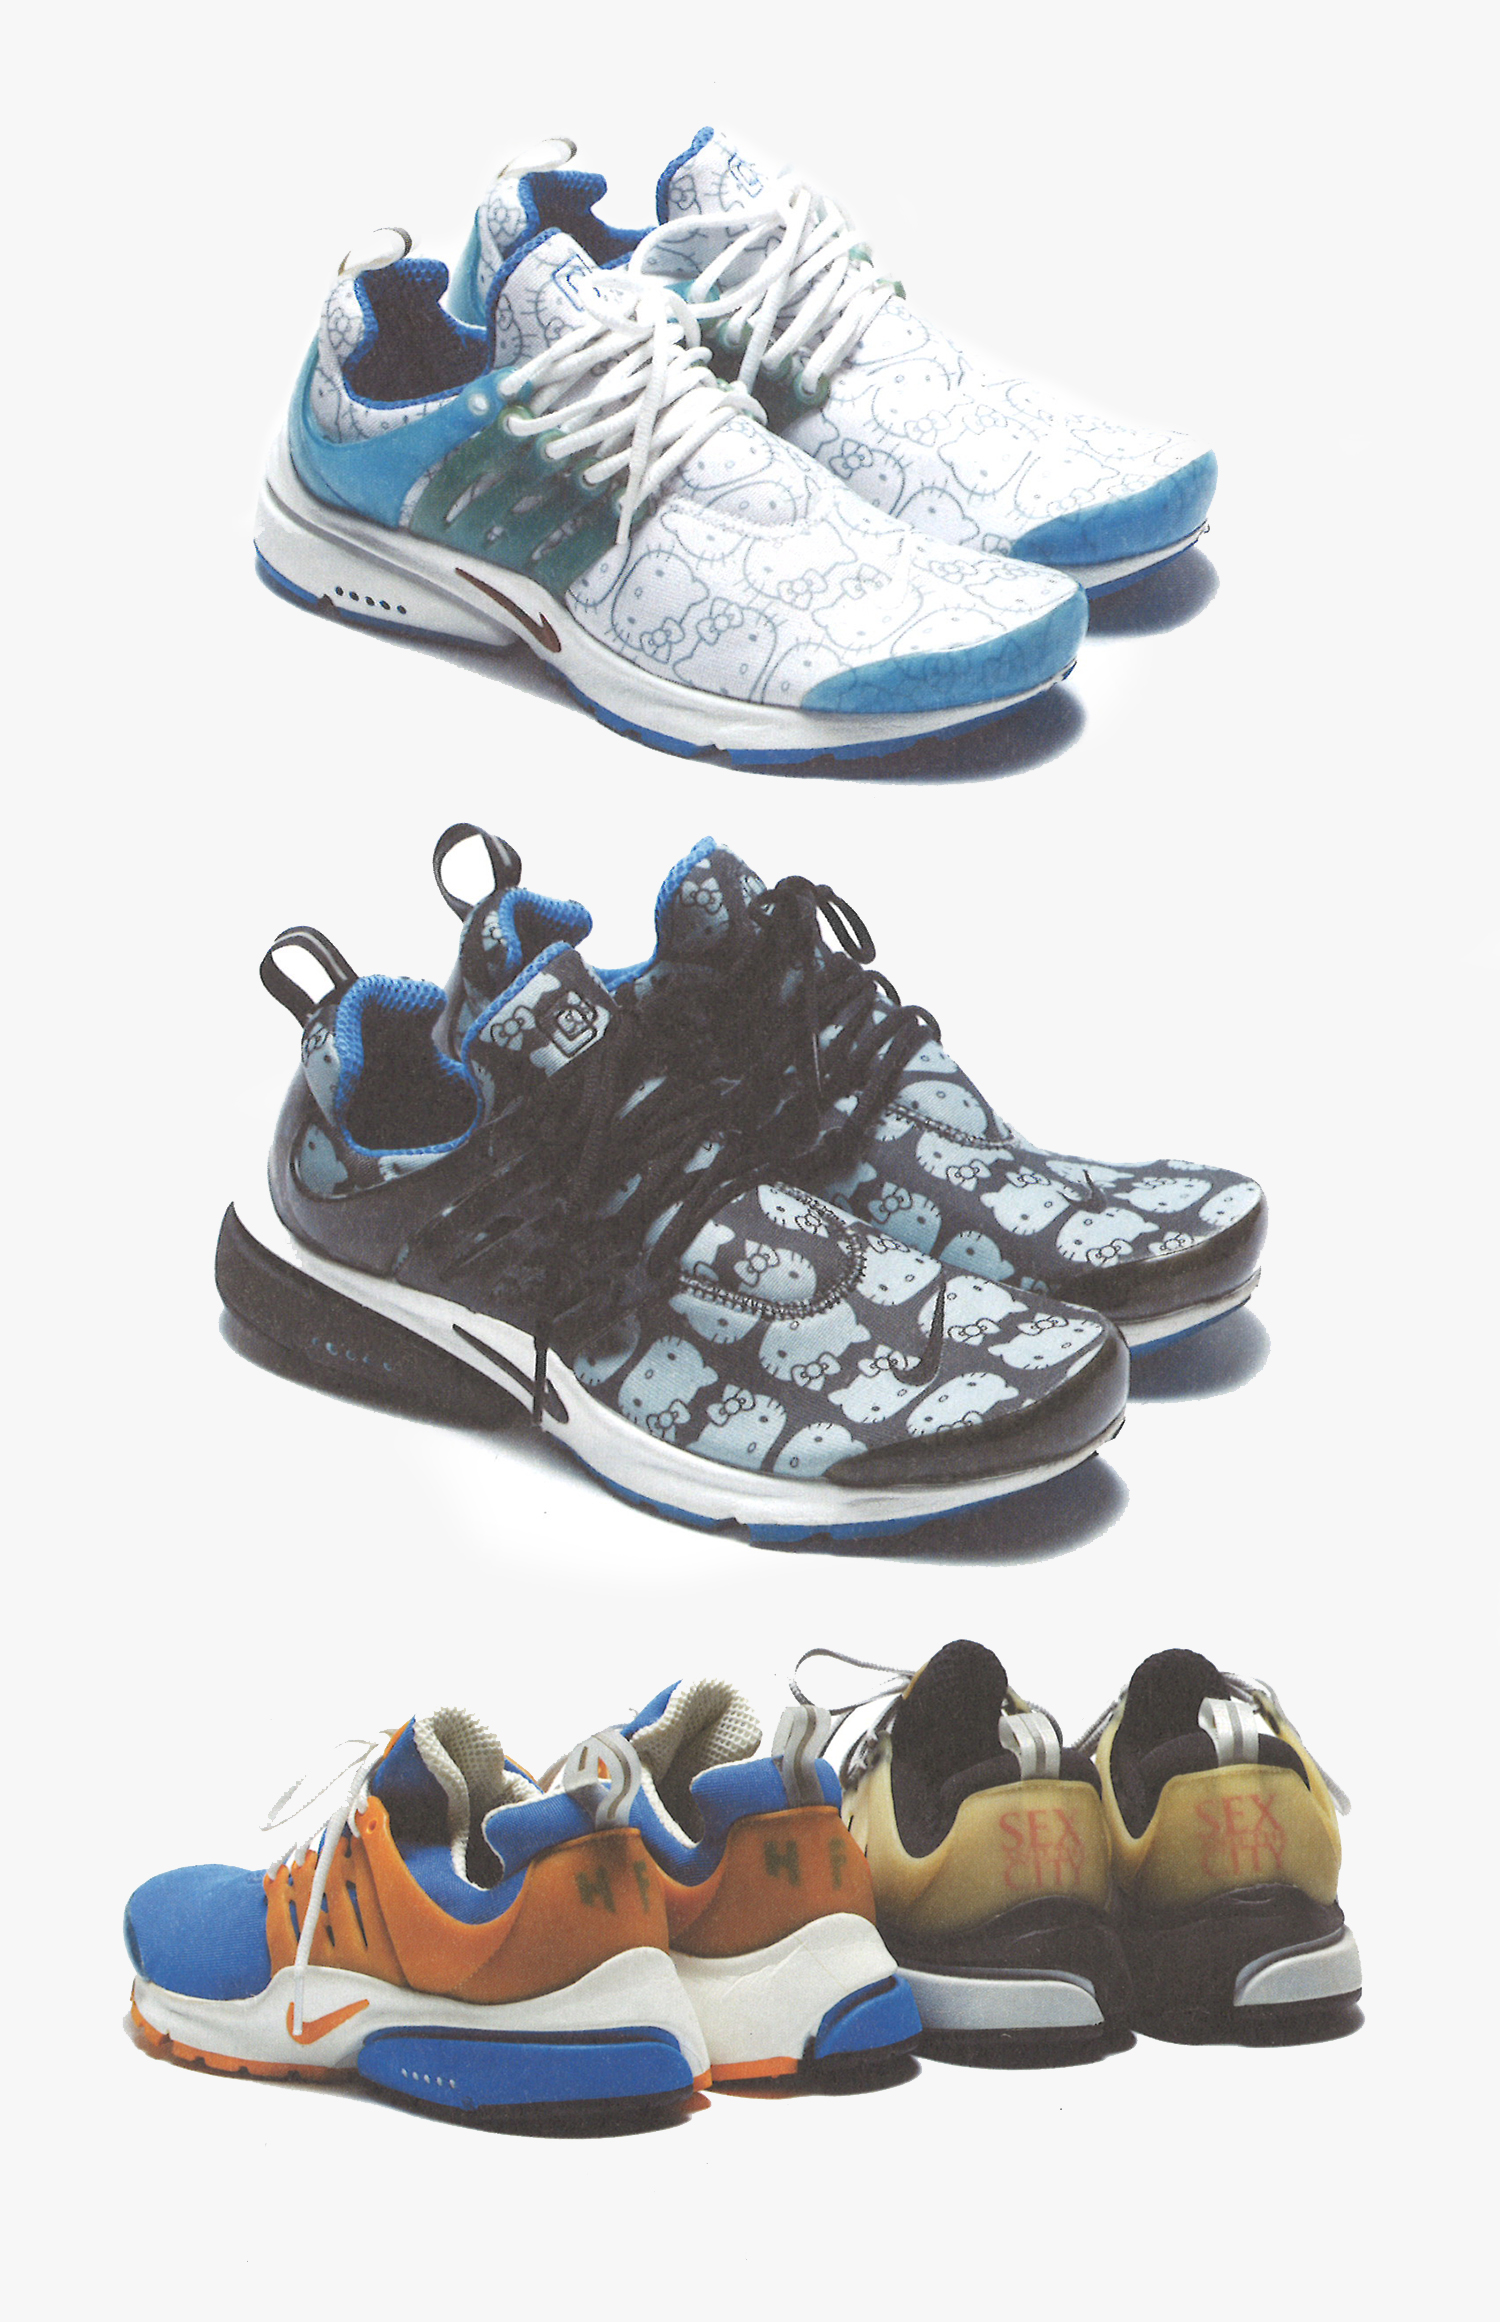 Learn some more about the Nike Air Presto